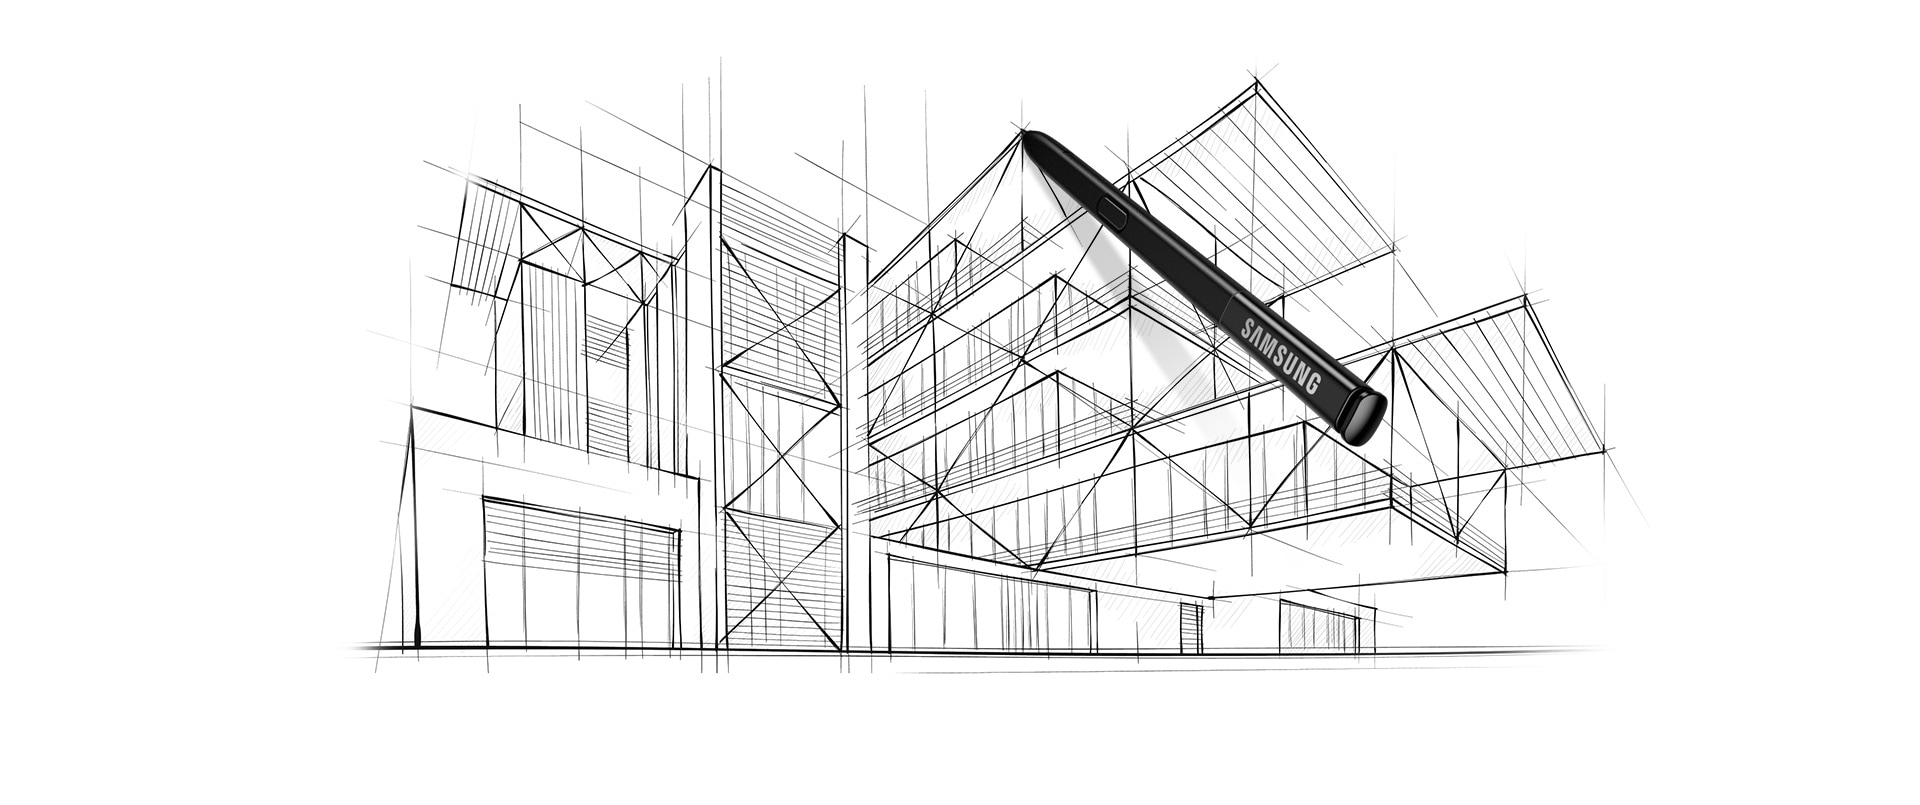 Image of a S Pen over an architectural line drawing.